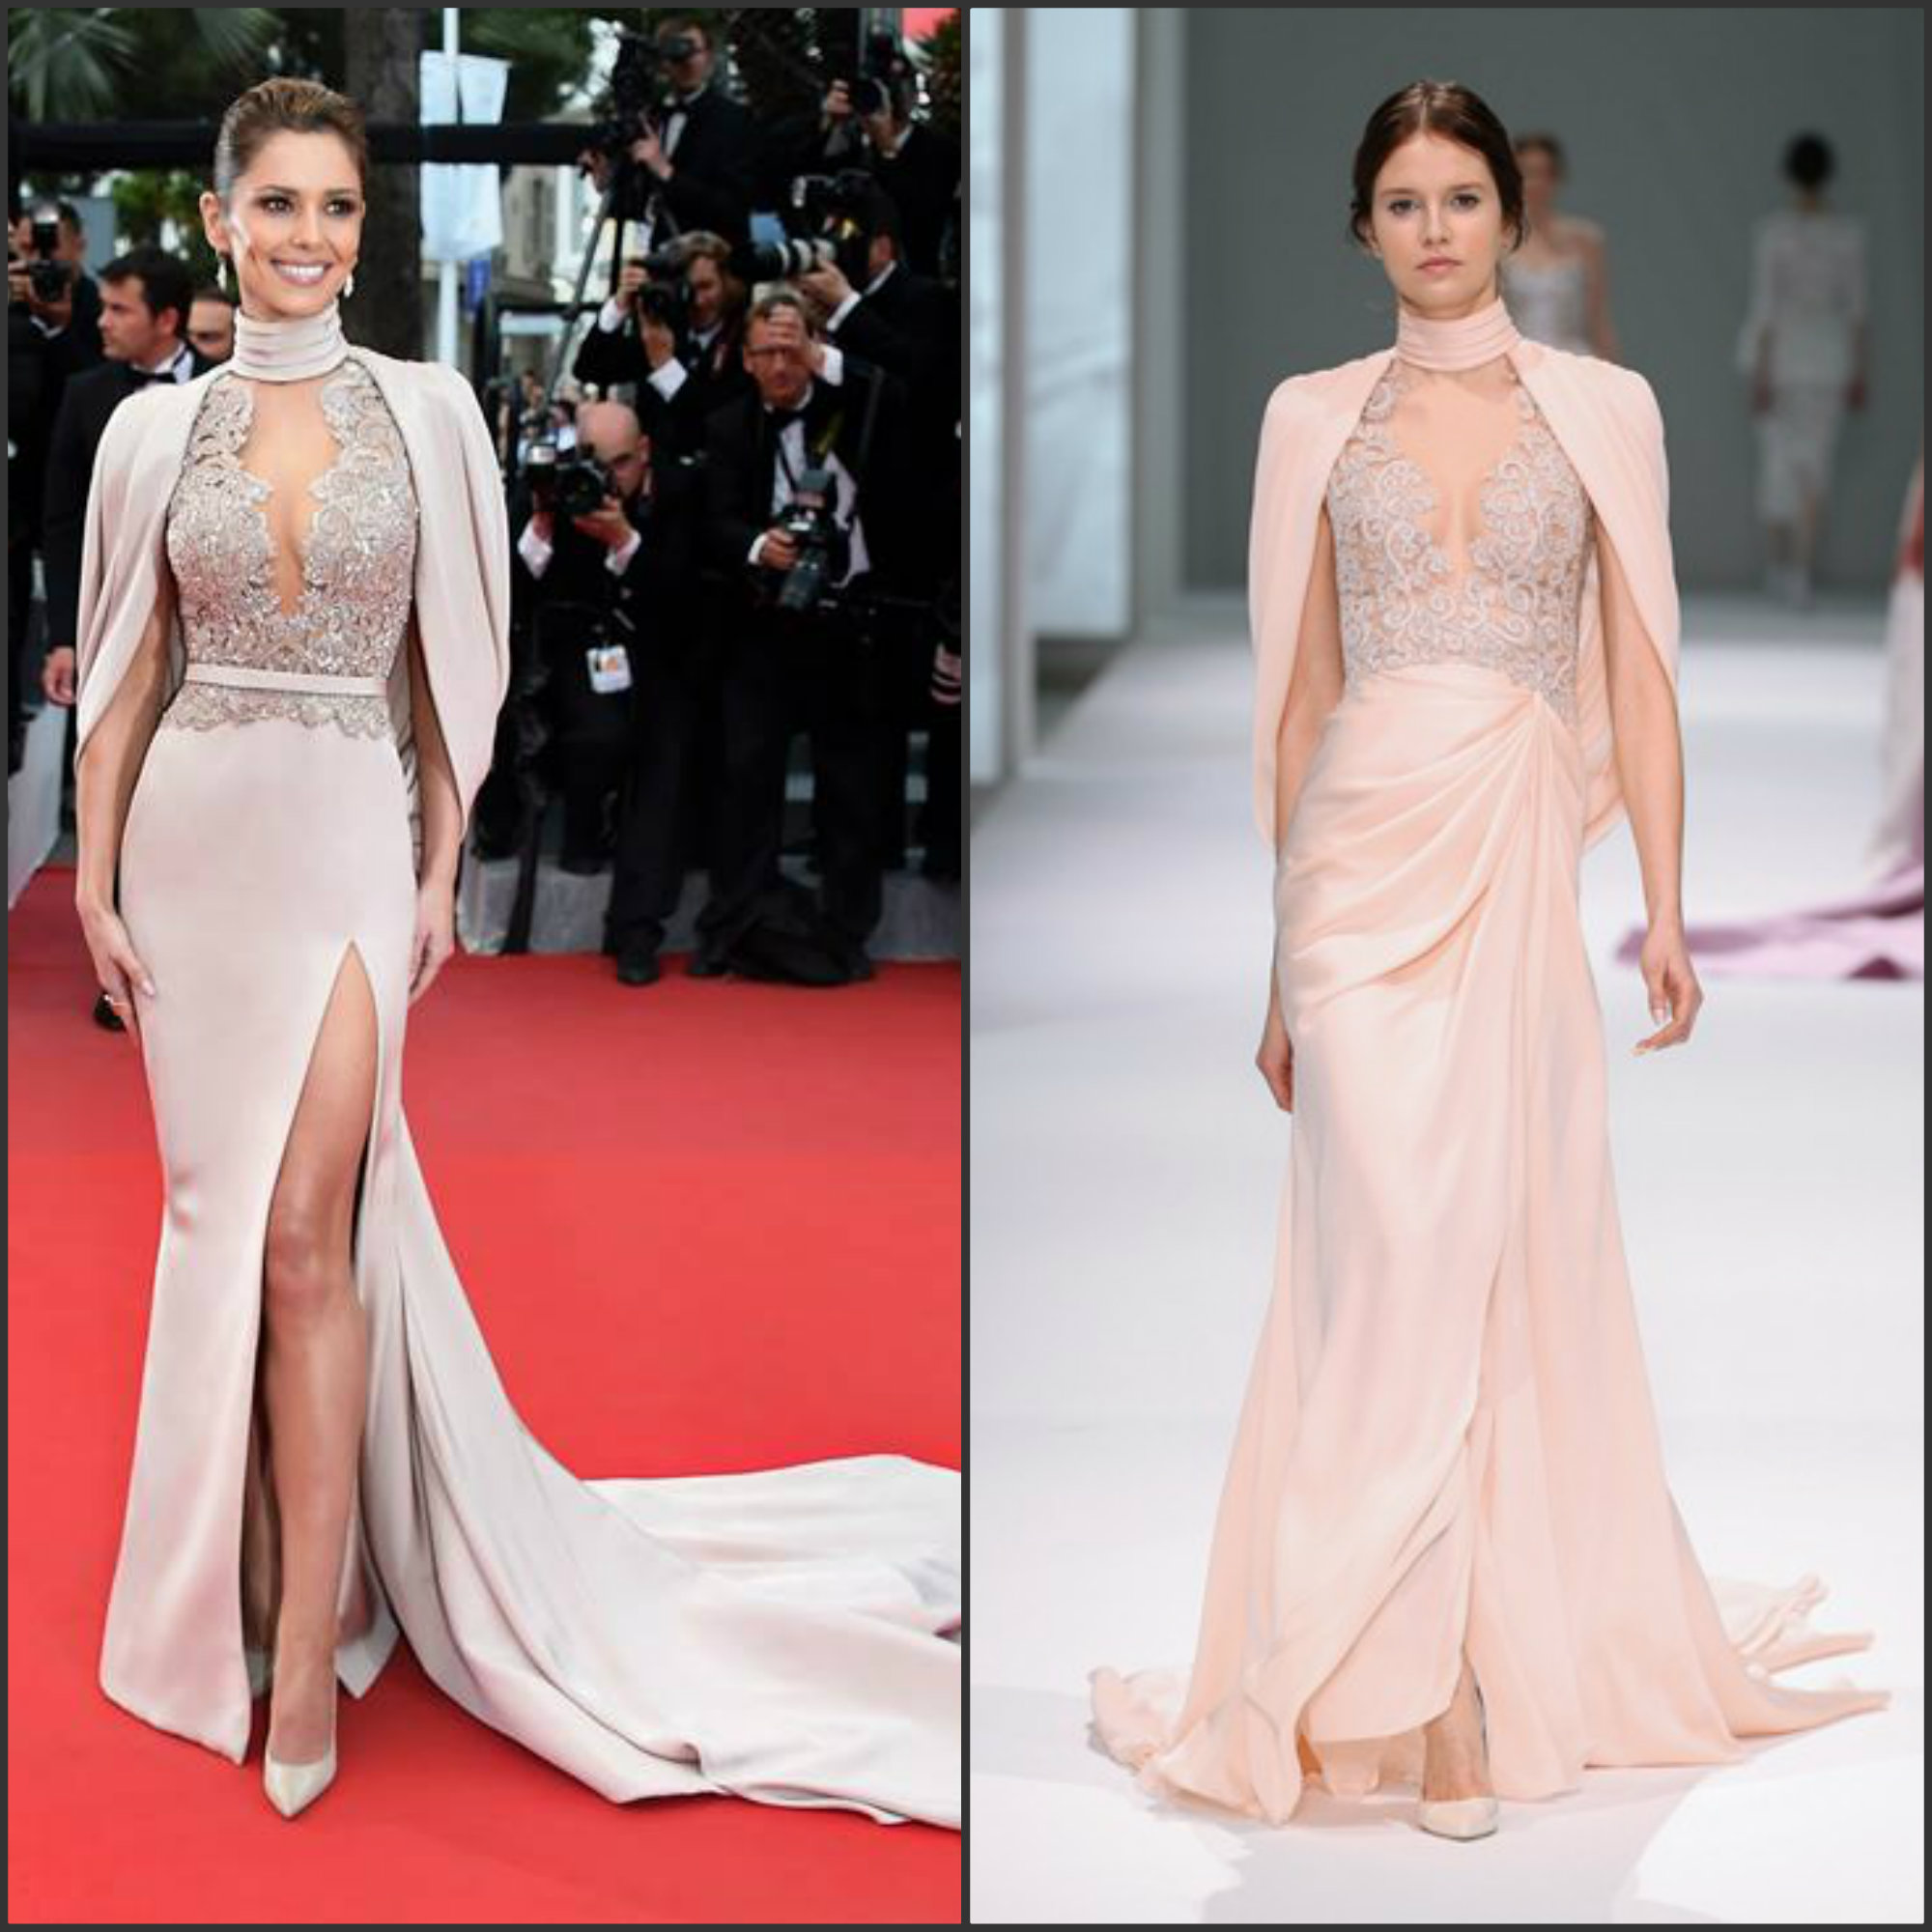 cheryl-fernandez-versini-in-ralph-and-russo-couture-irrational-man-cannes-film-festival-premiere